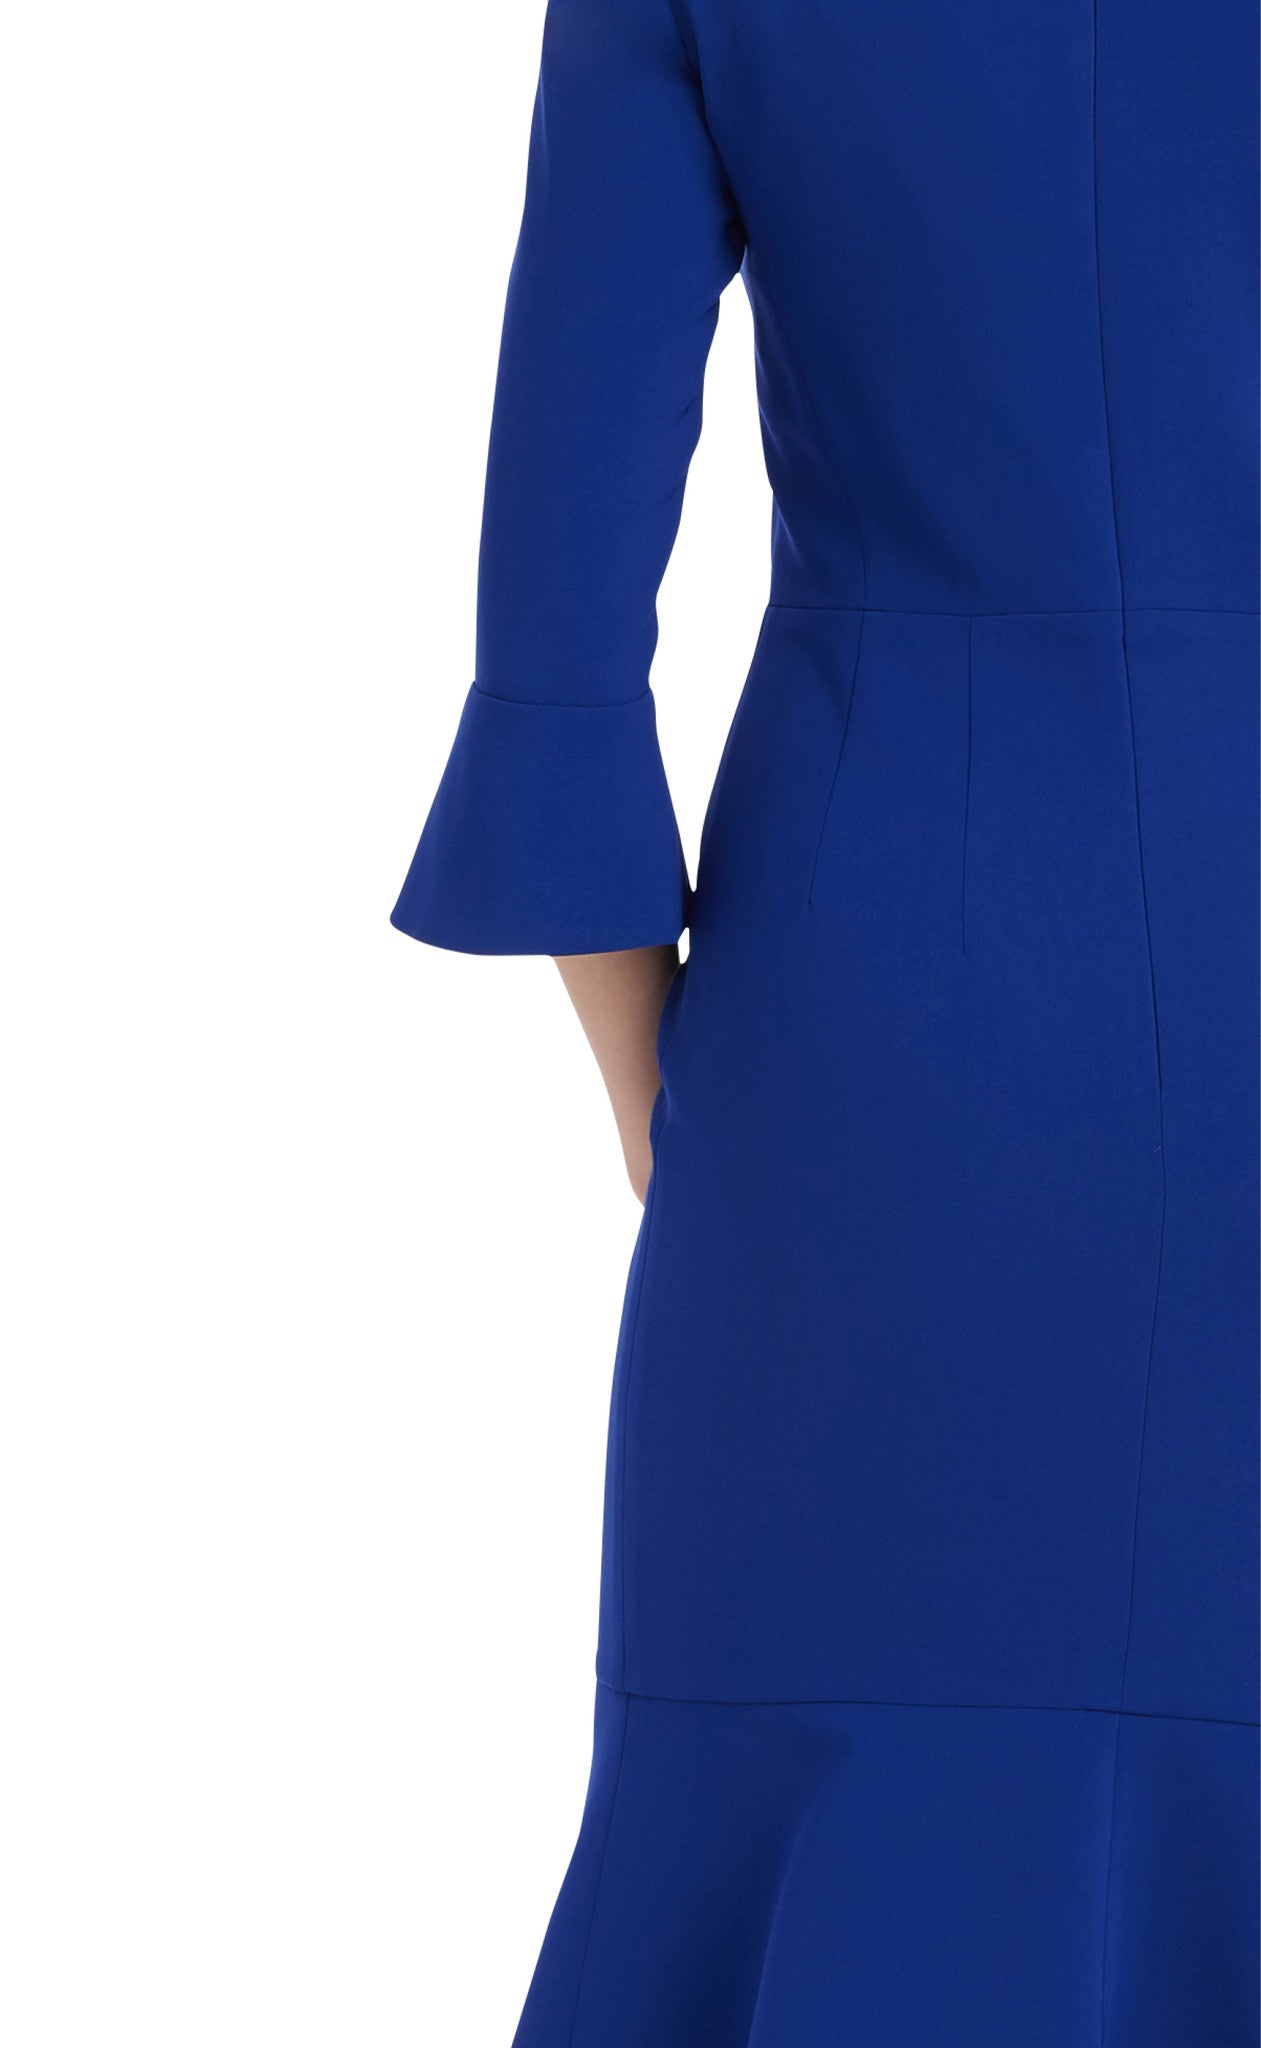 Eugenie Dress | Robe Eugenie